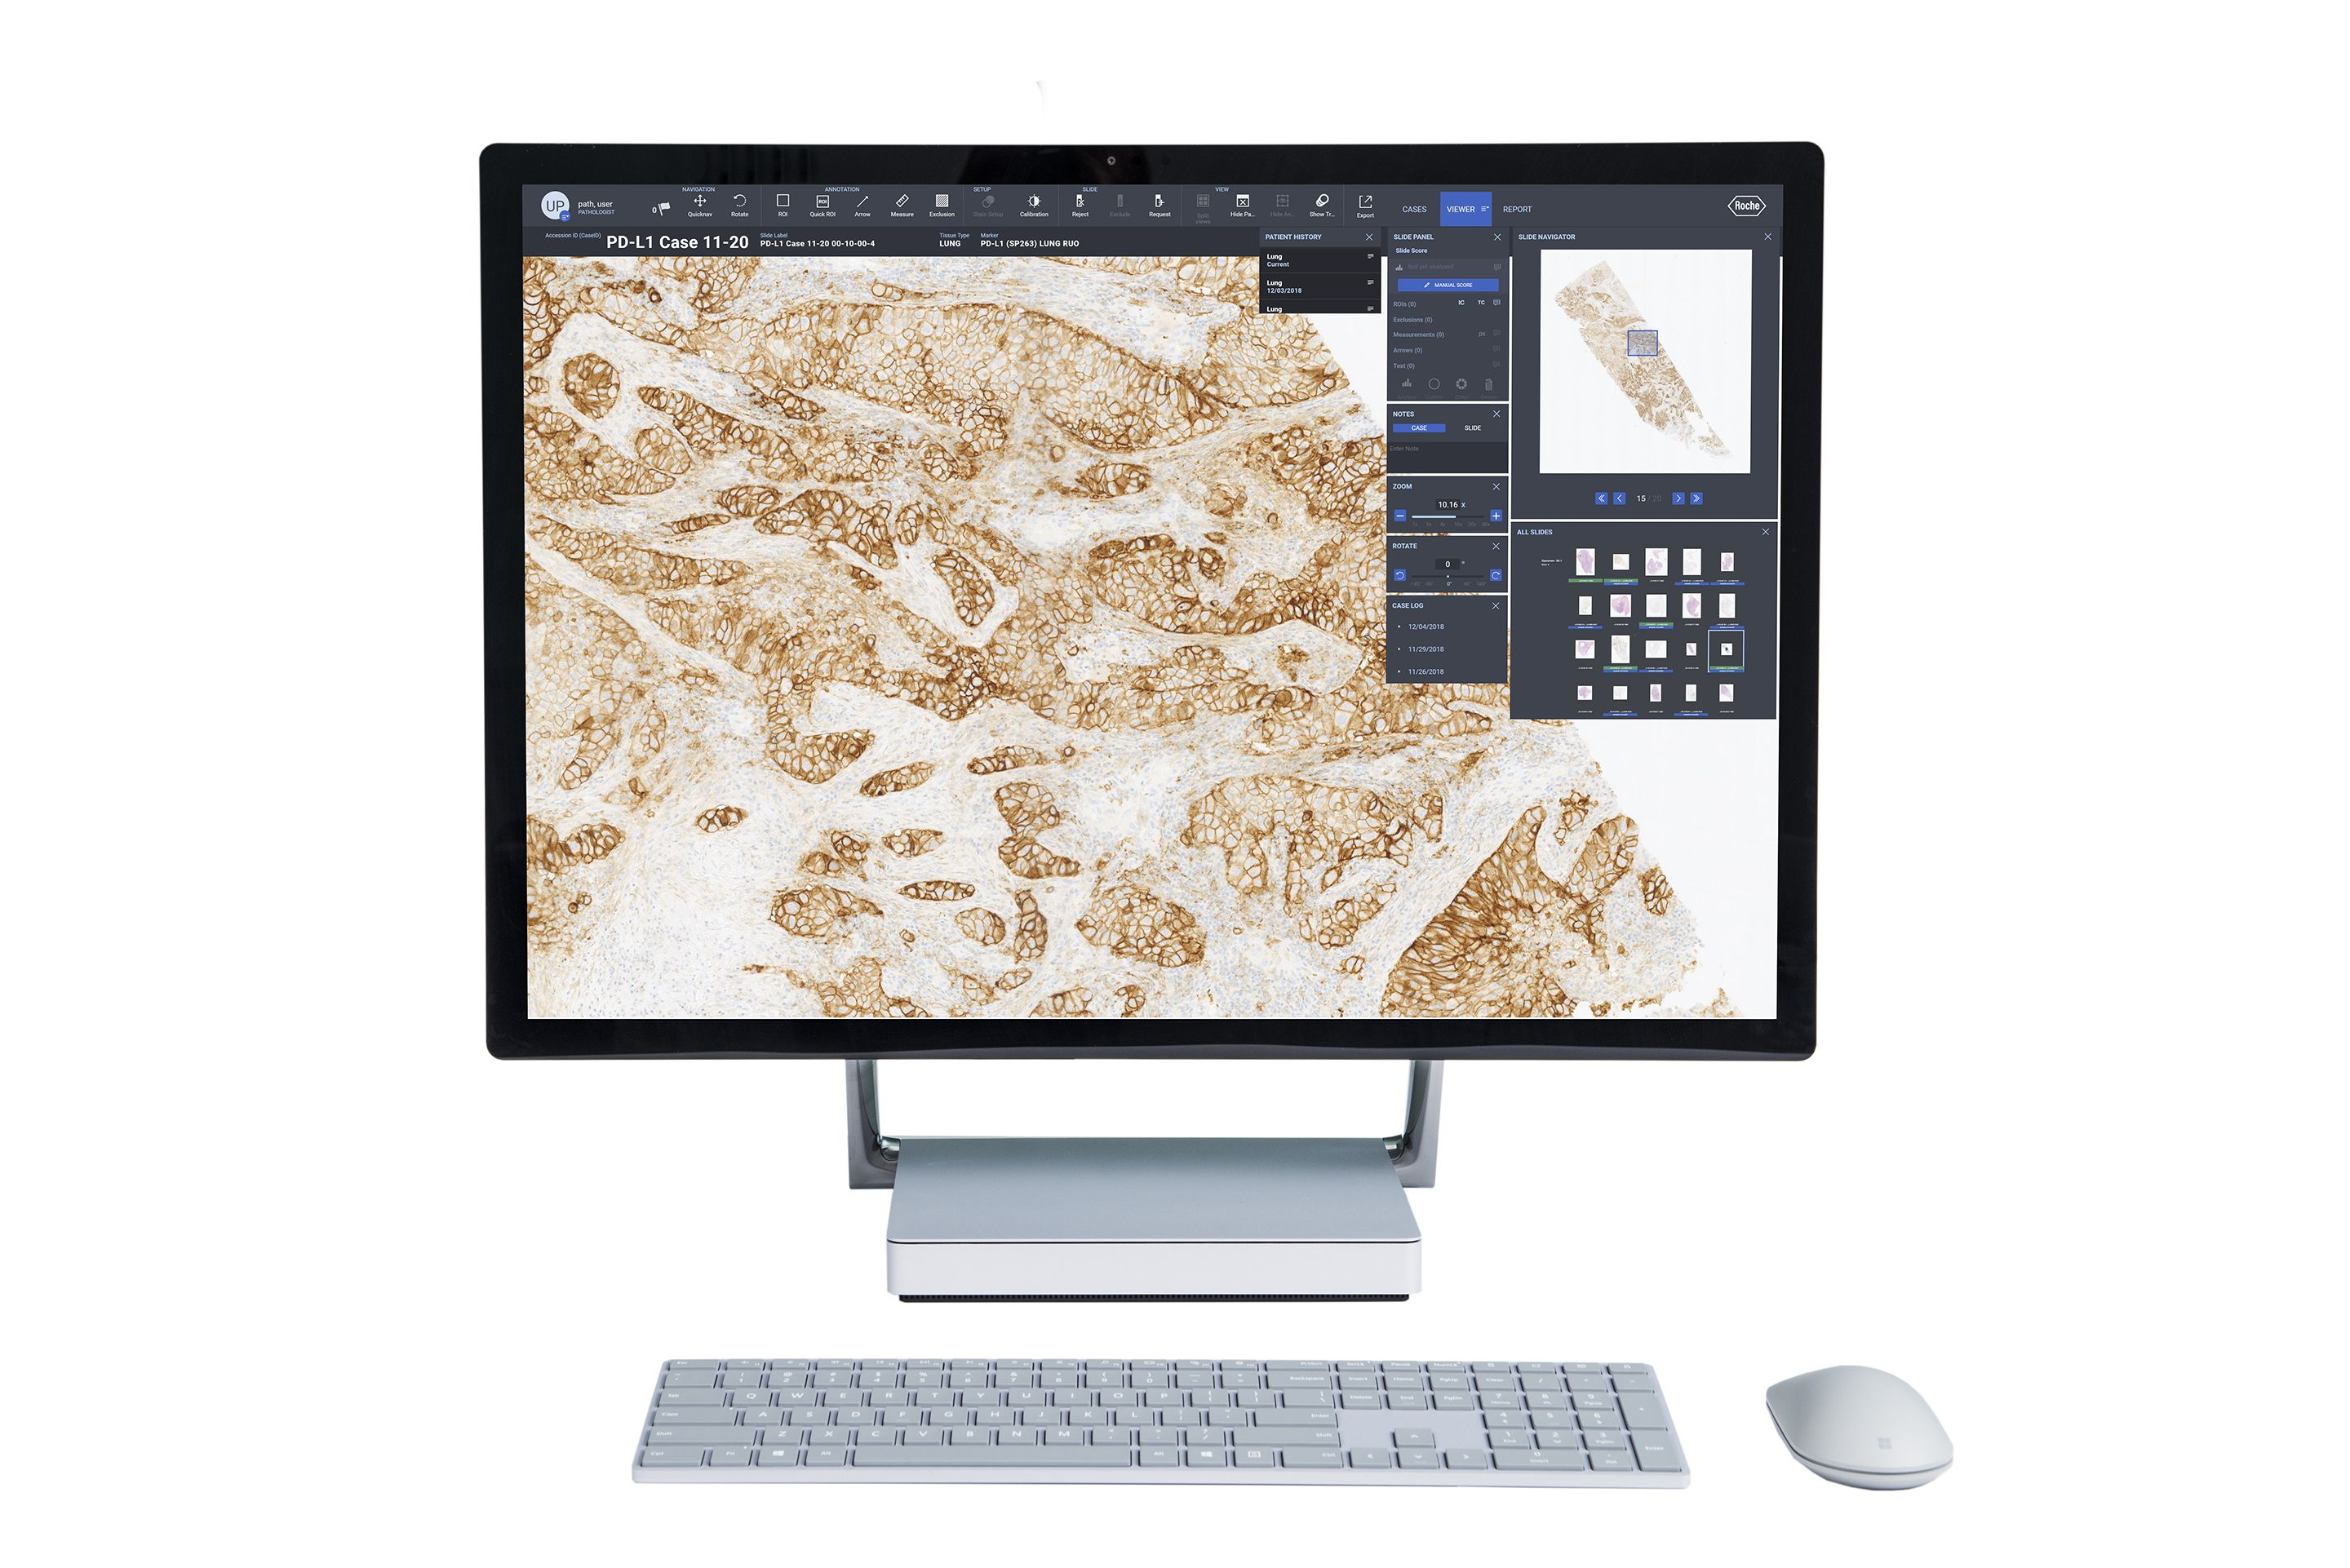 Roche uPath Software für digitale Pathologie